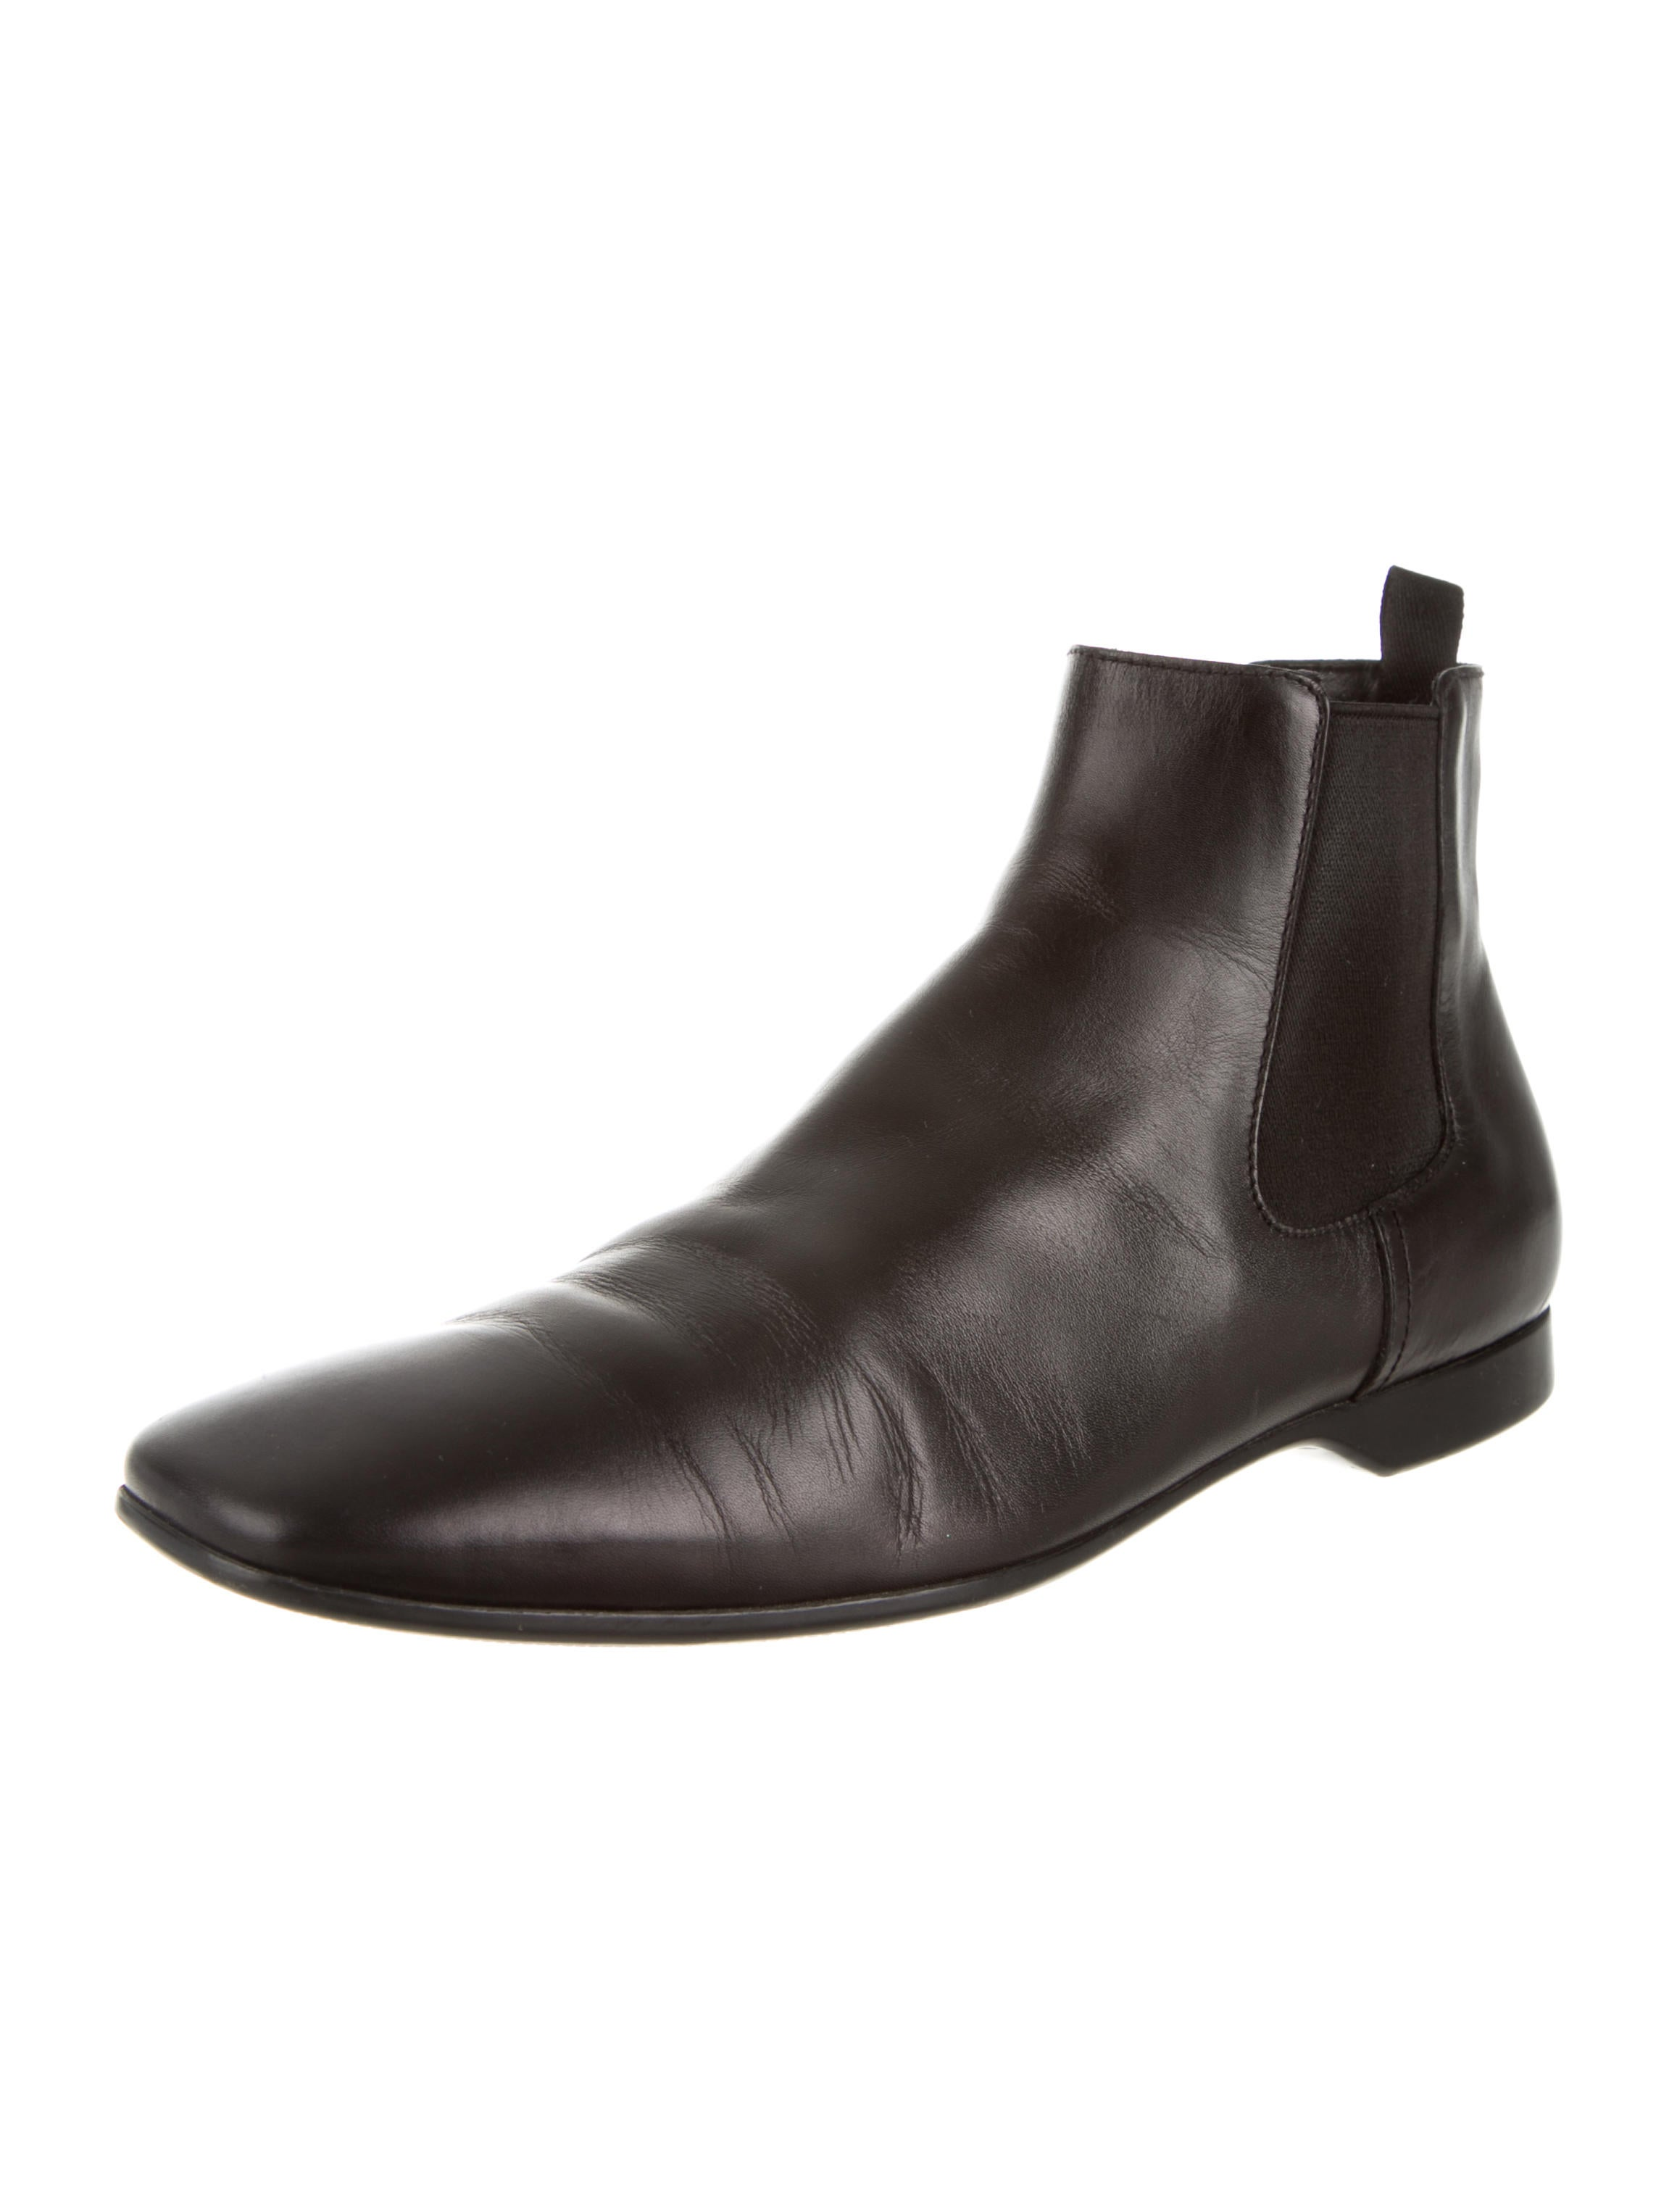 prada leather chelsea boots shoes pra83485 the realreal